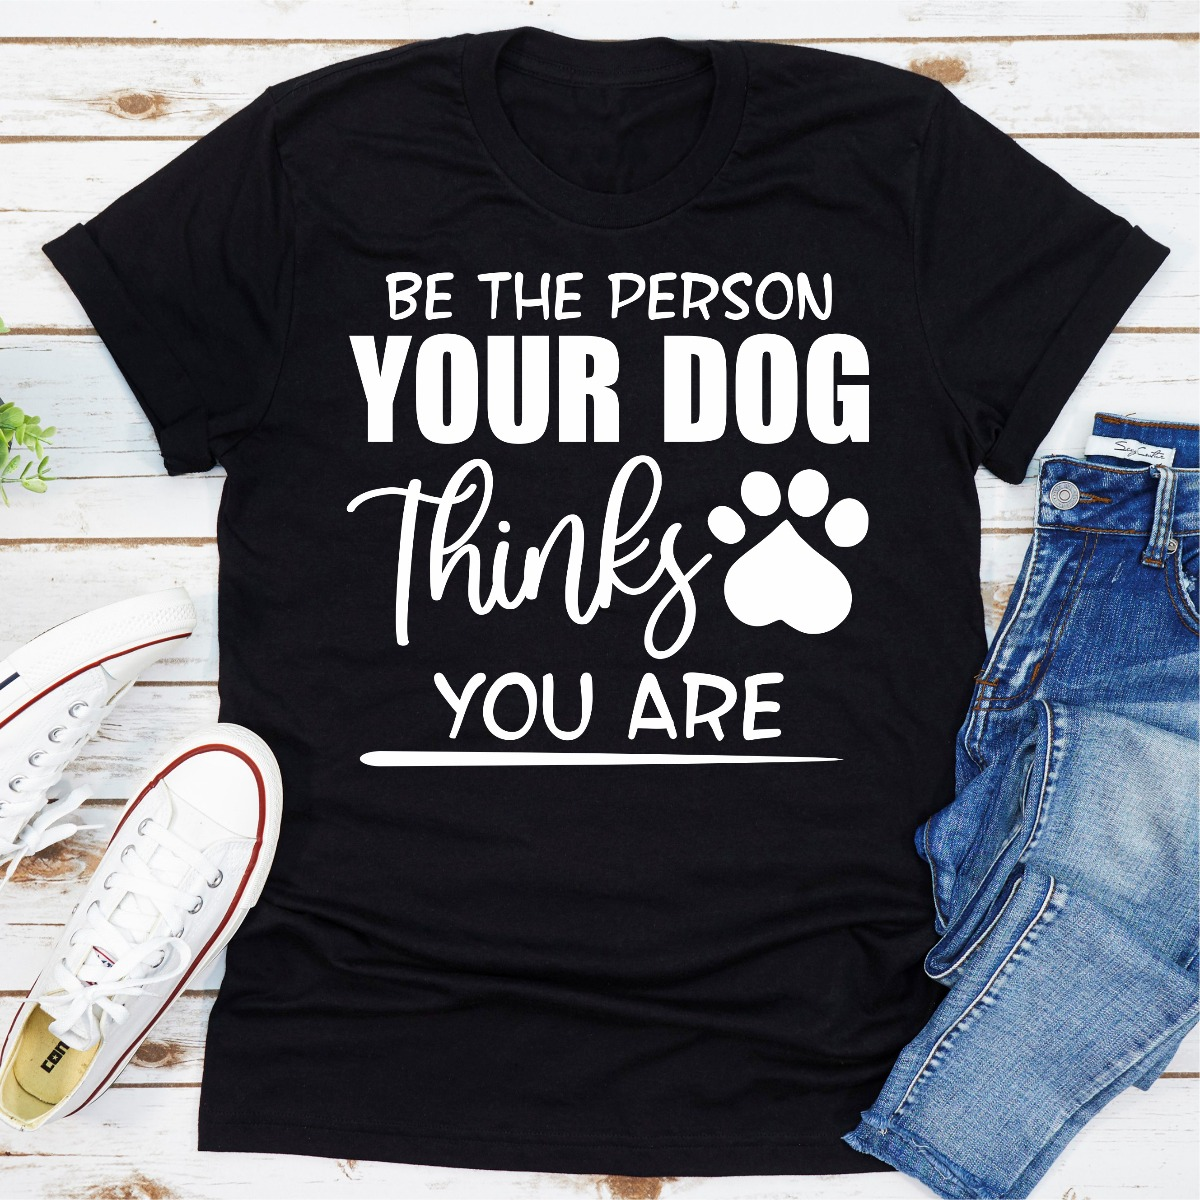 Be The Person Your Dog Thinks You Are (Black / 3Xl)